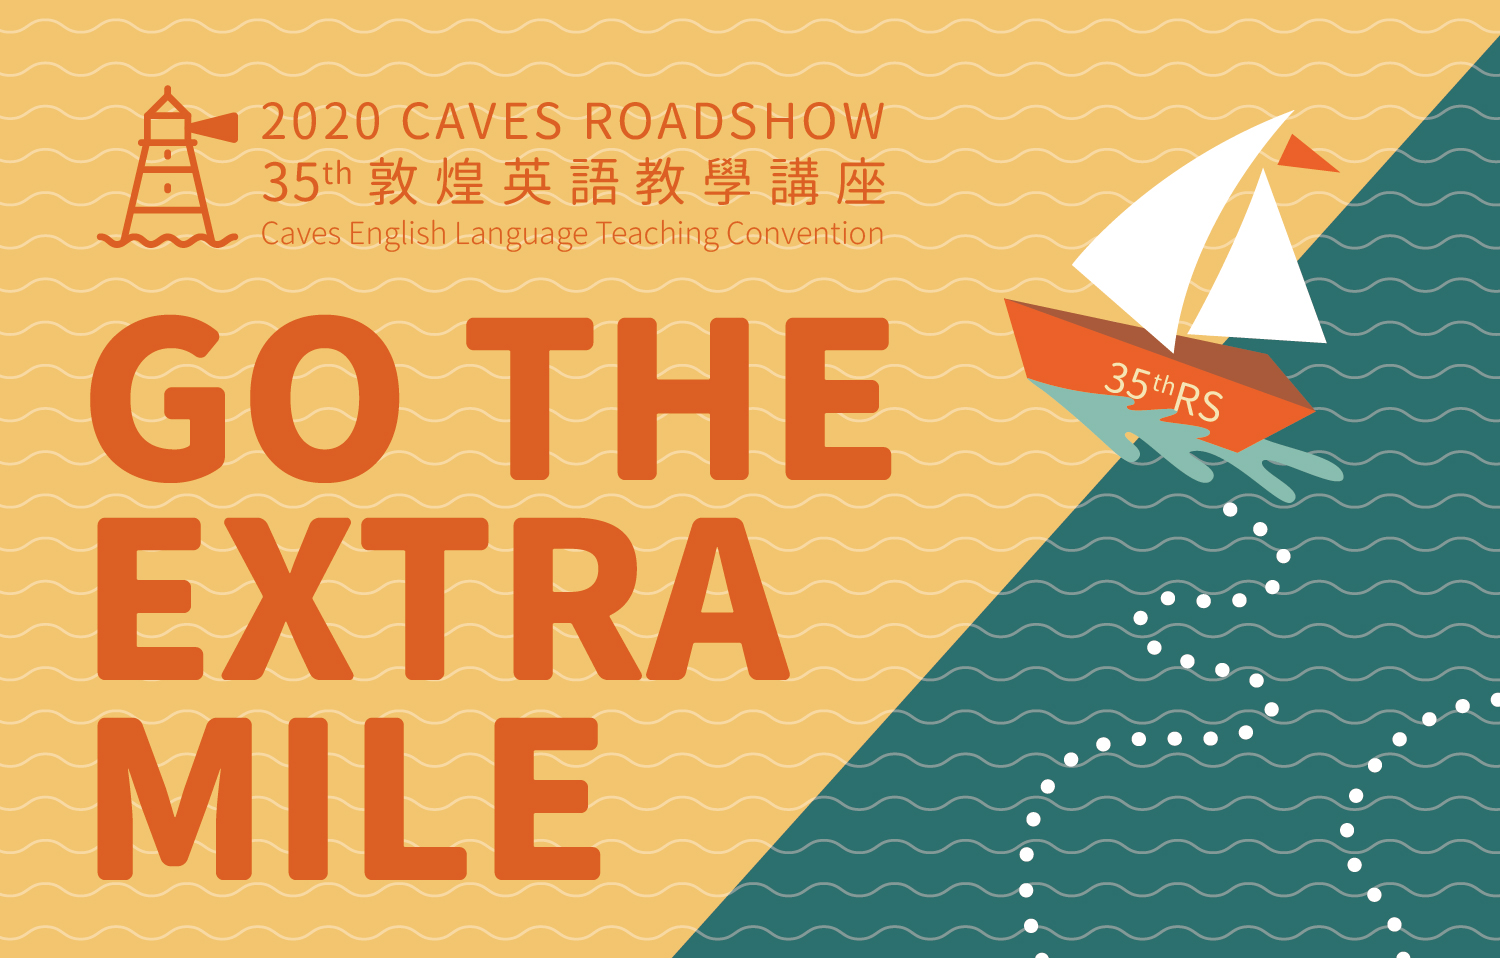 2020 CAVES ROADSHOW